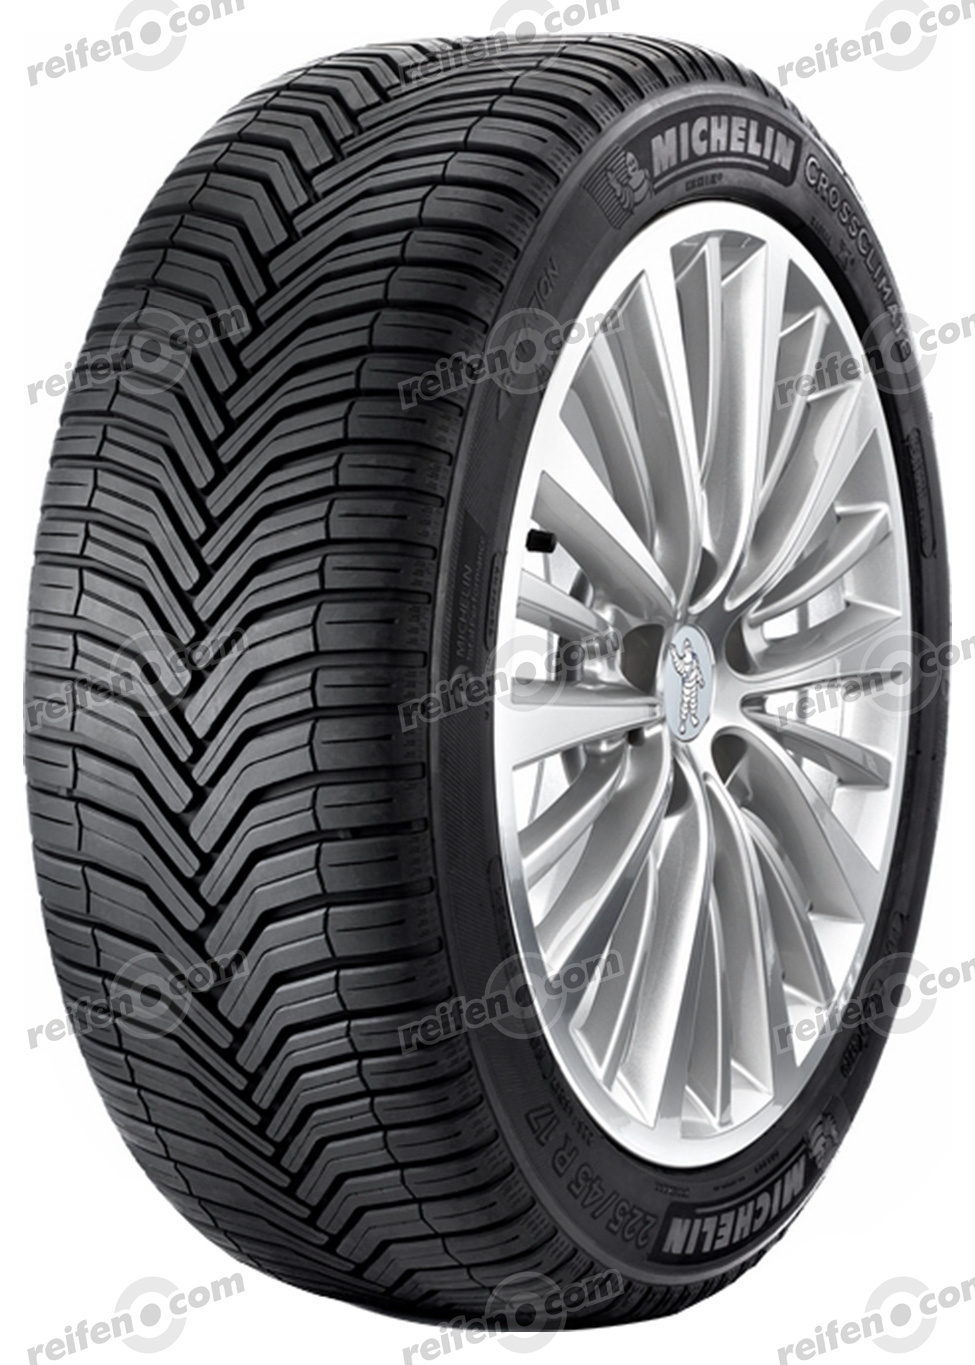 175/70 R14 88T Cross Climate XL  Cross Climate XL